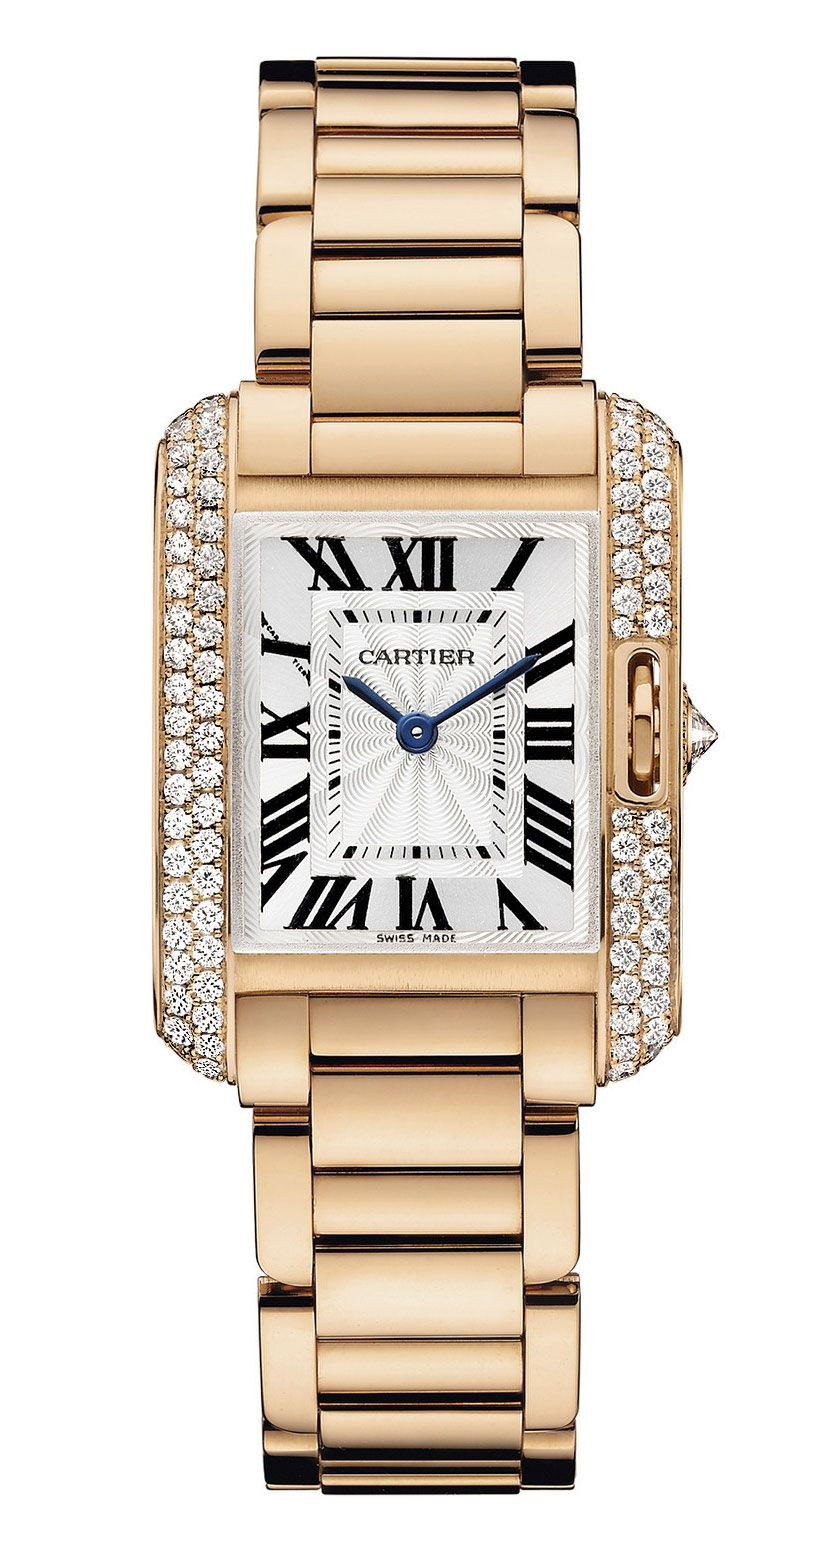 a6204f98a07 Tank Anglaise watch Small model in 18-carat pink gold with 0.8ct round  brilliant-cut diamonds and flinqué dial